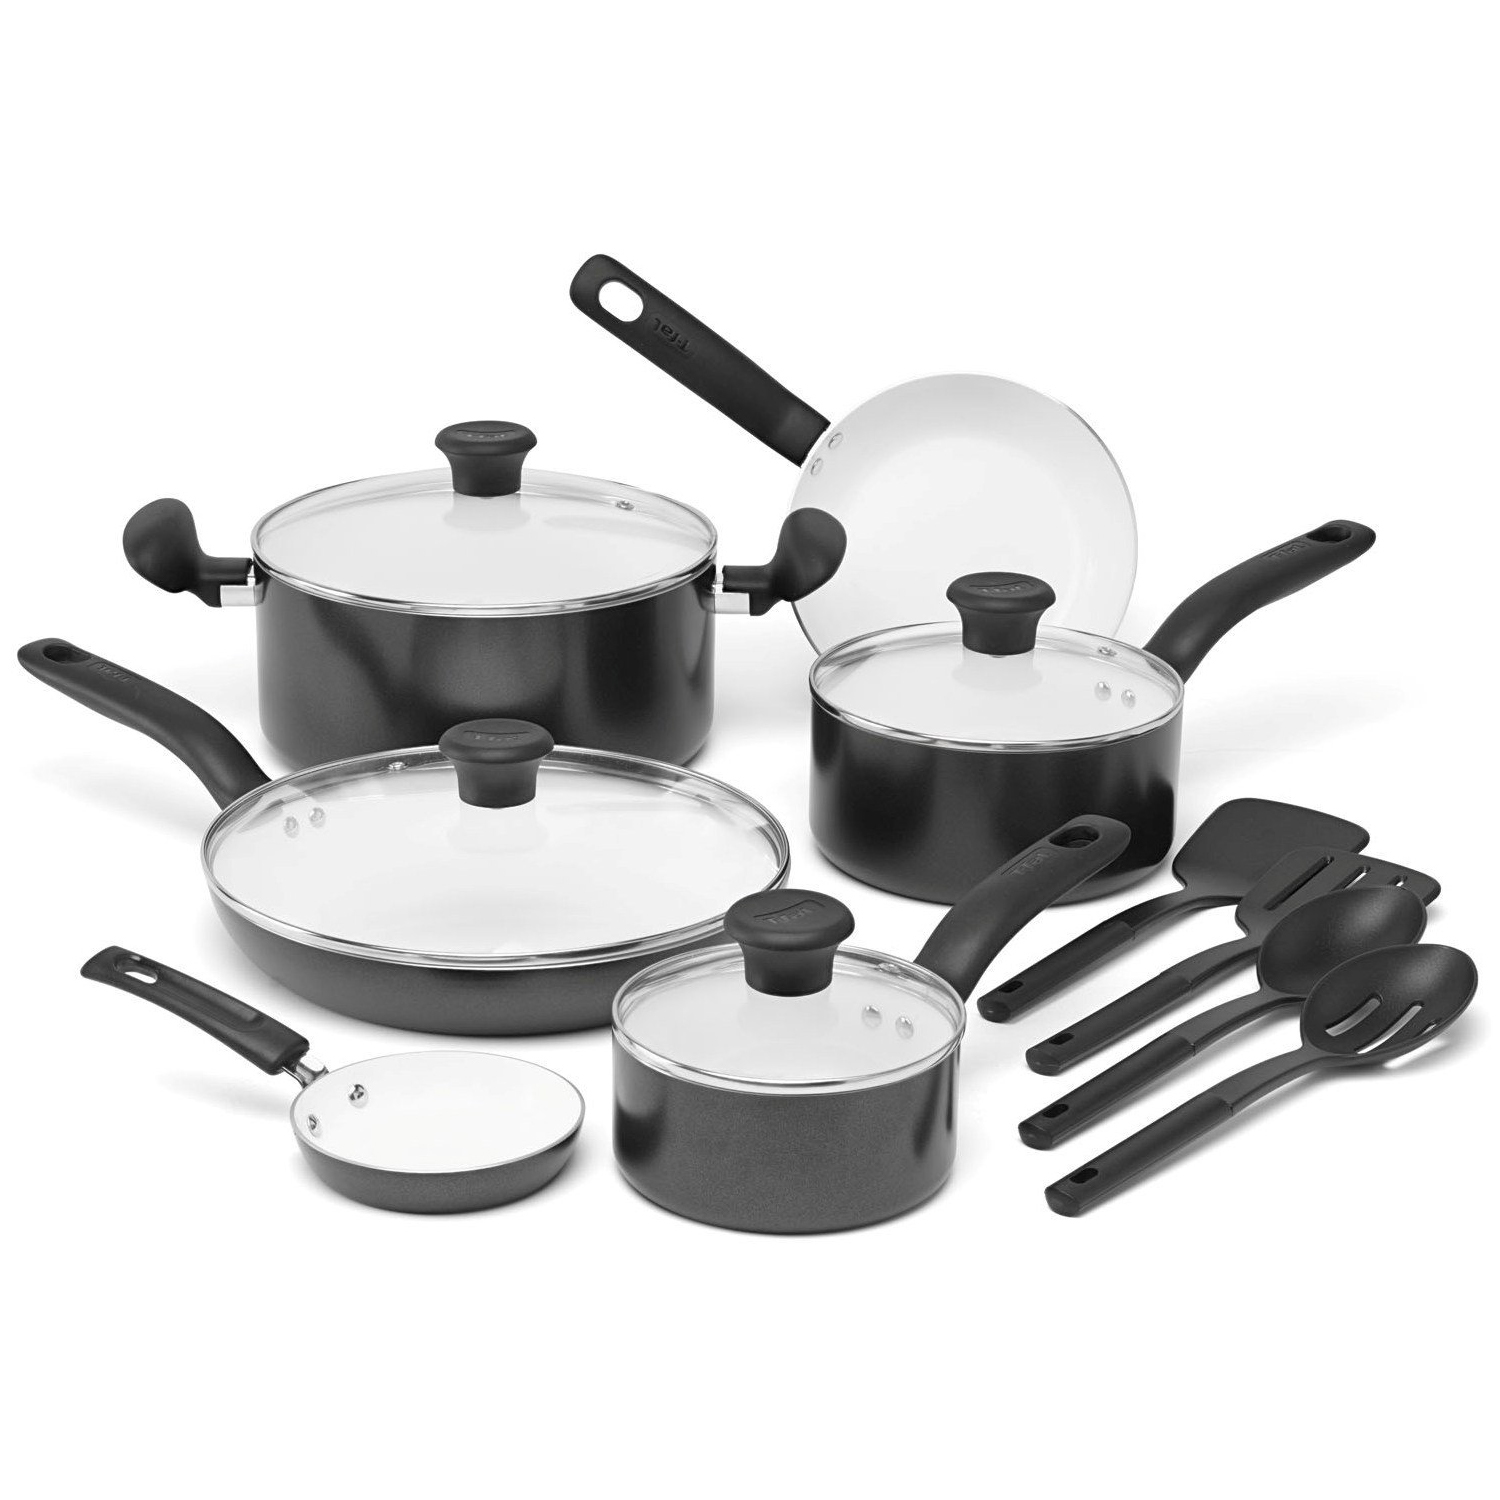 T fal Initiatives Ceramic Cookware Review